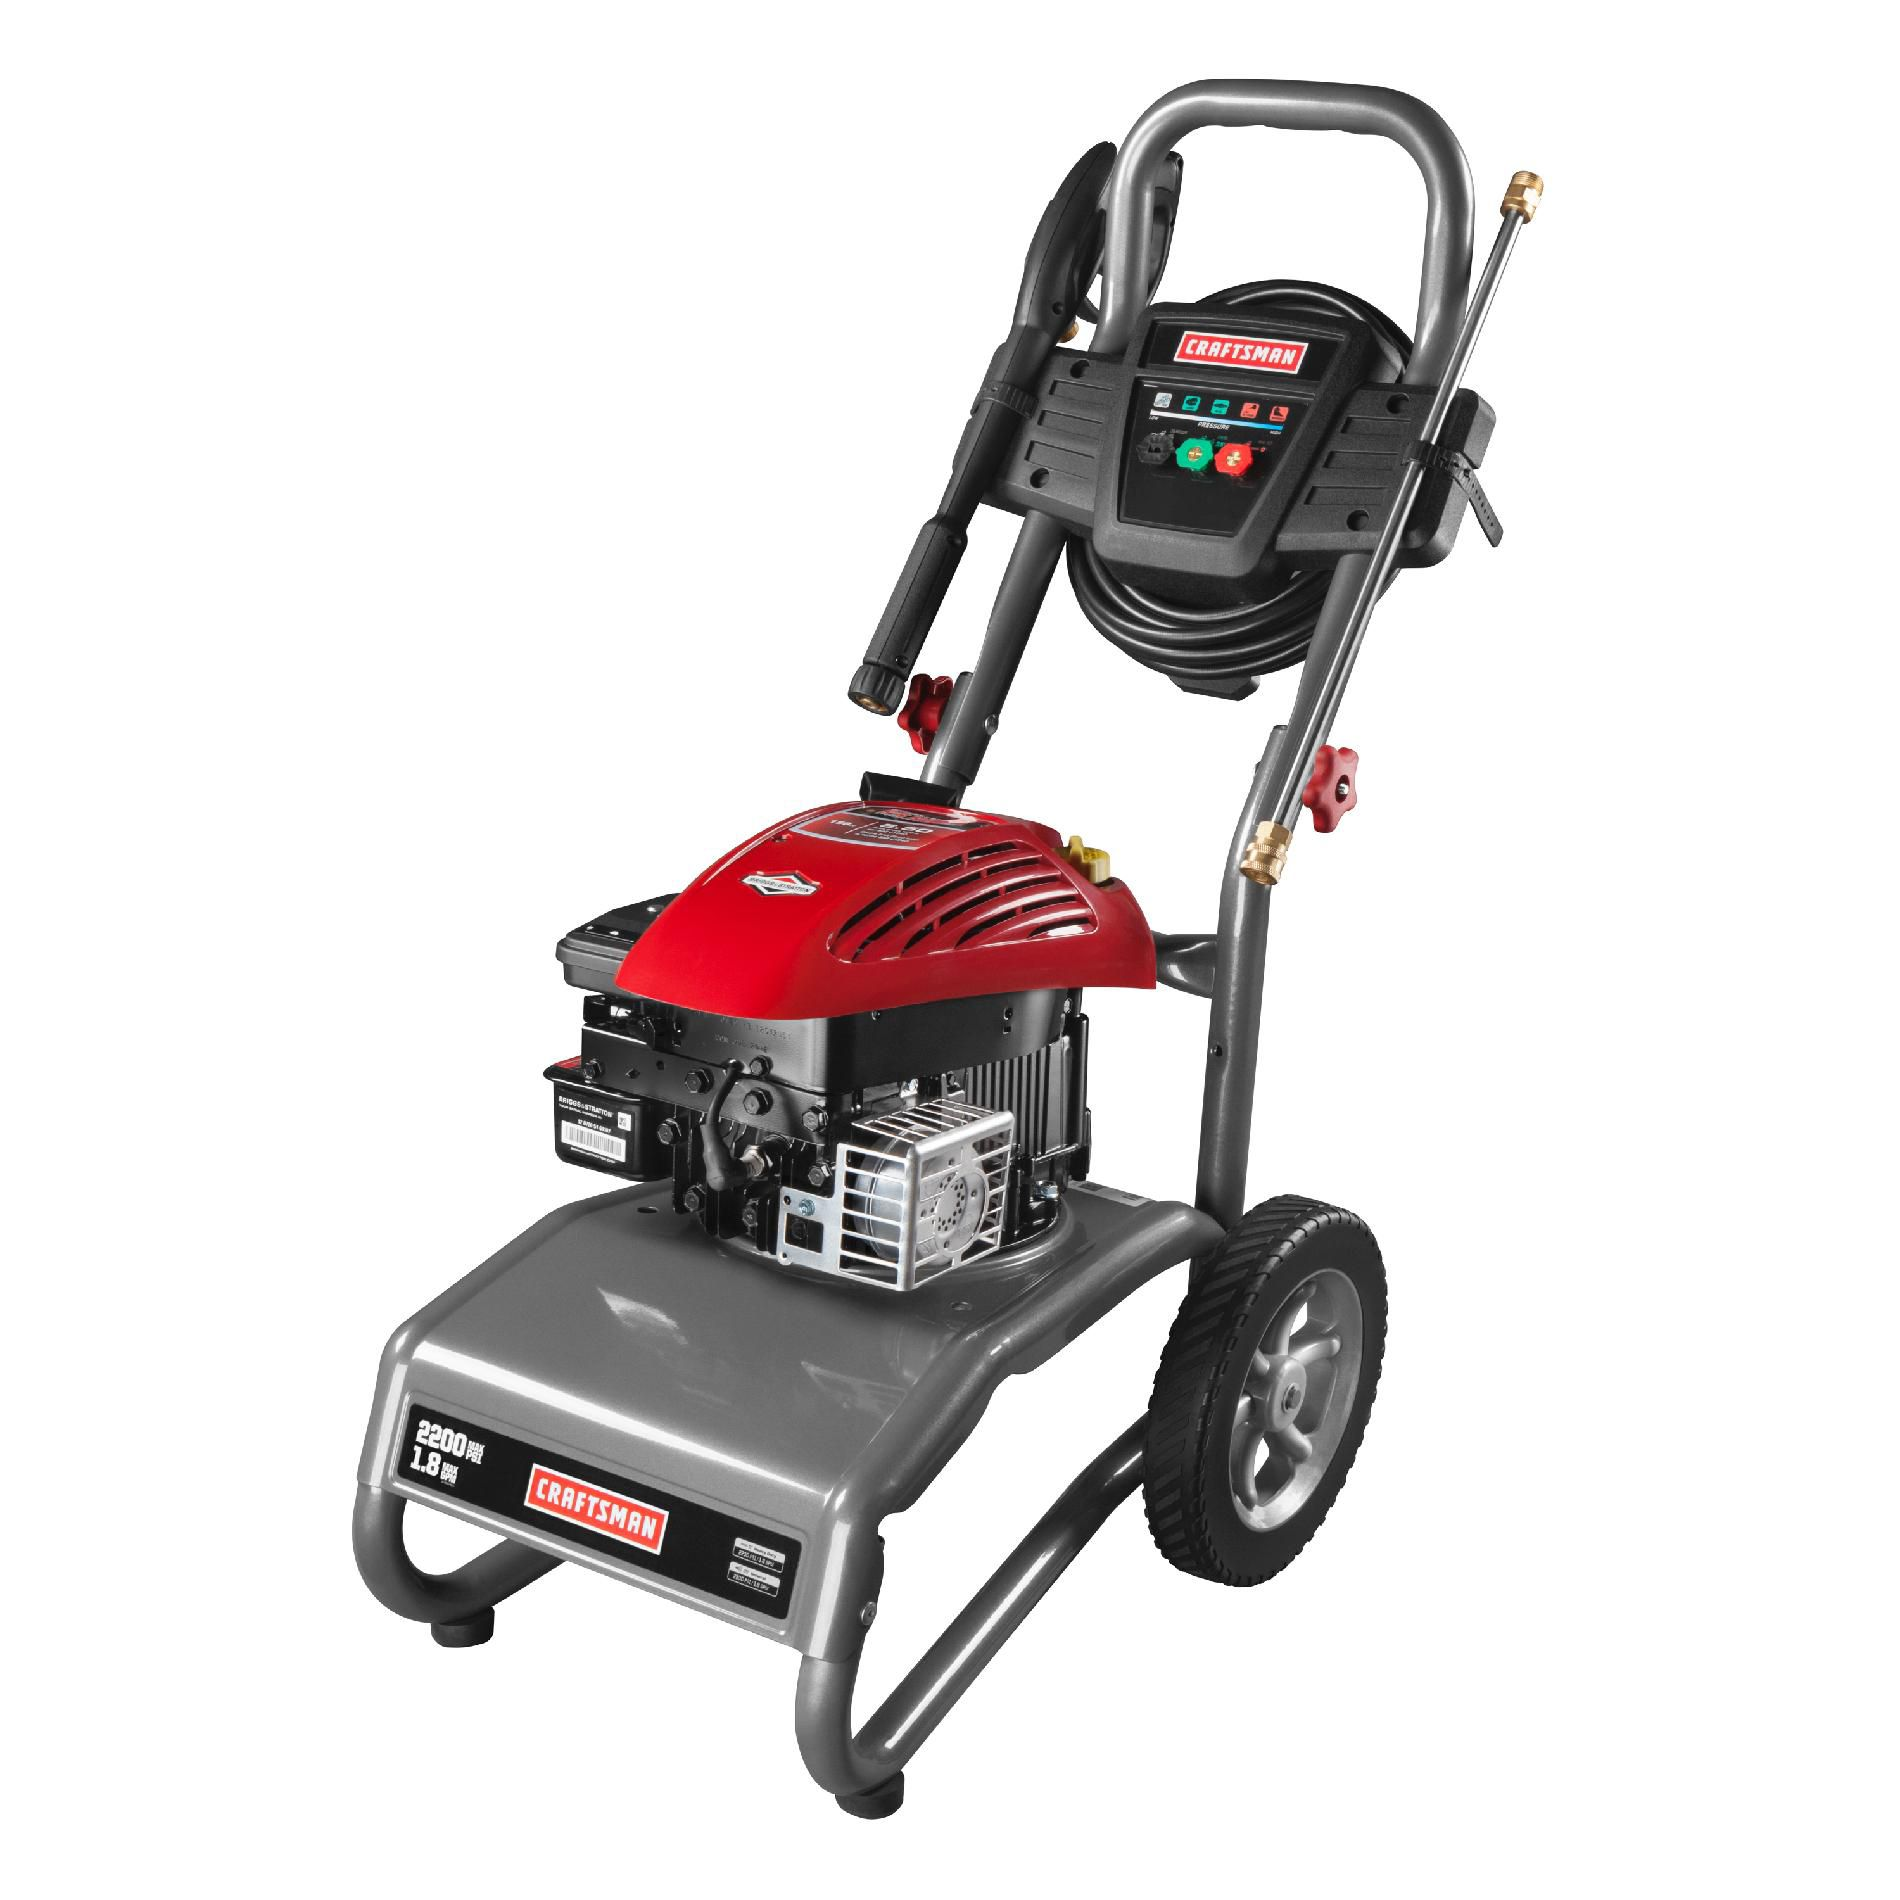 2,200 PSI Gas-Powered Pressure Washer-1.8 GPM